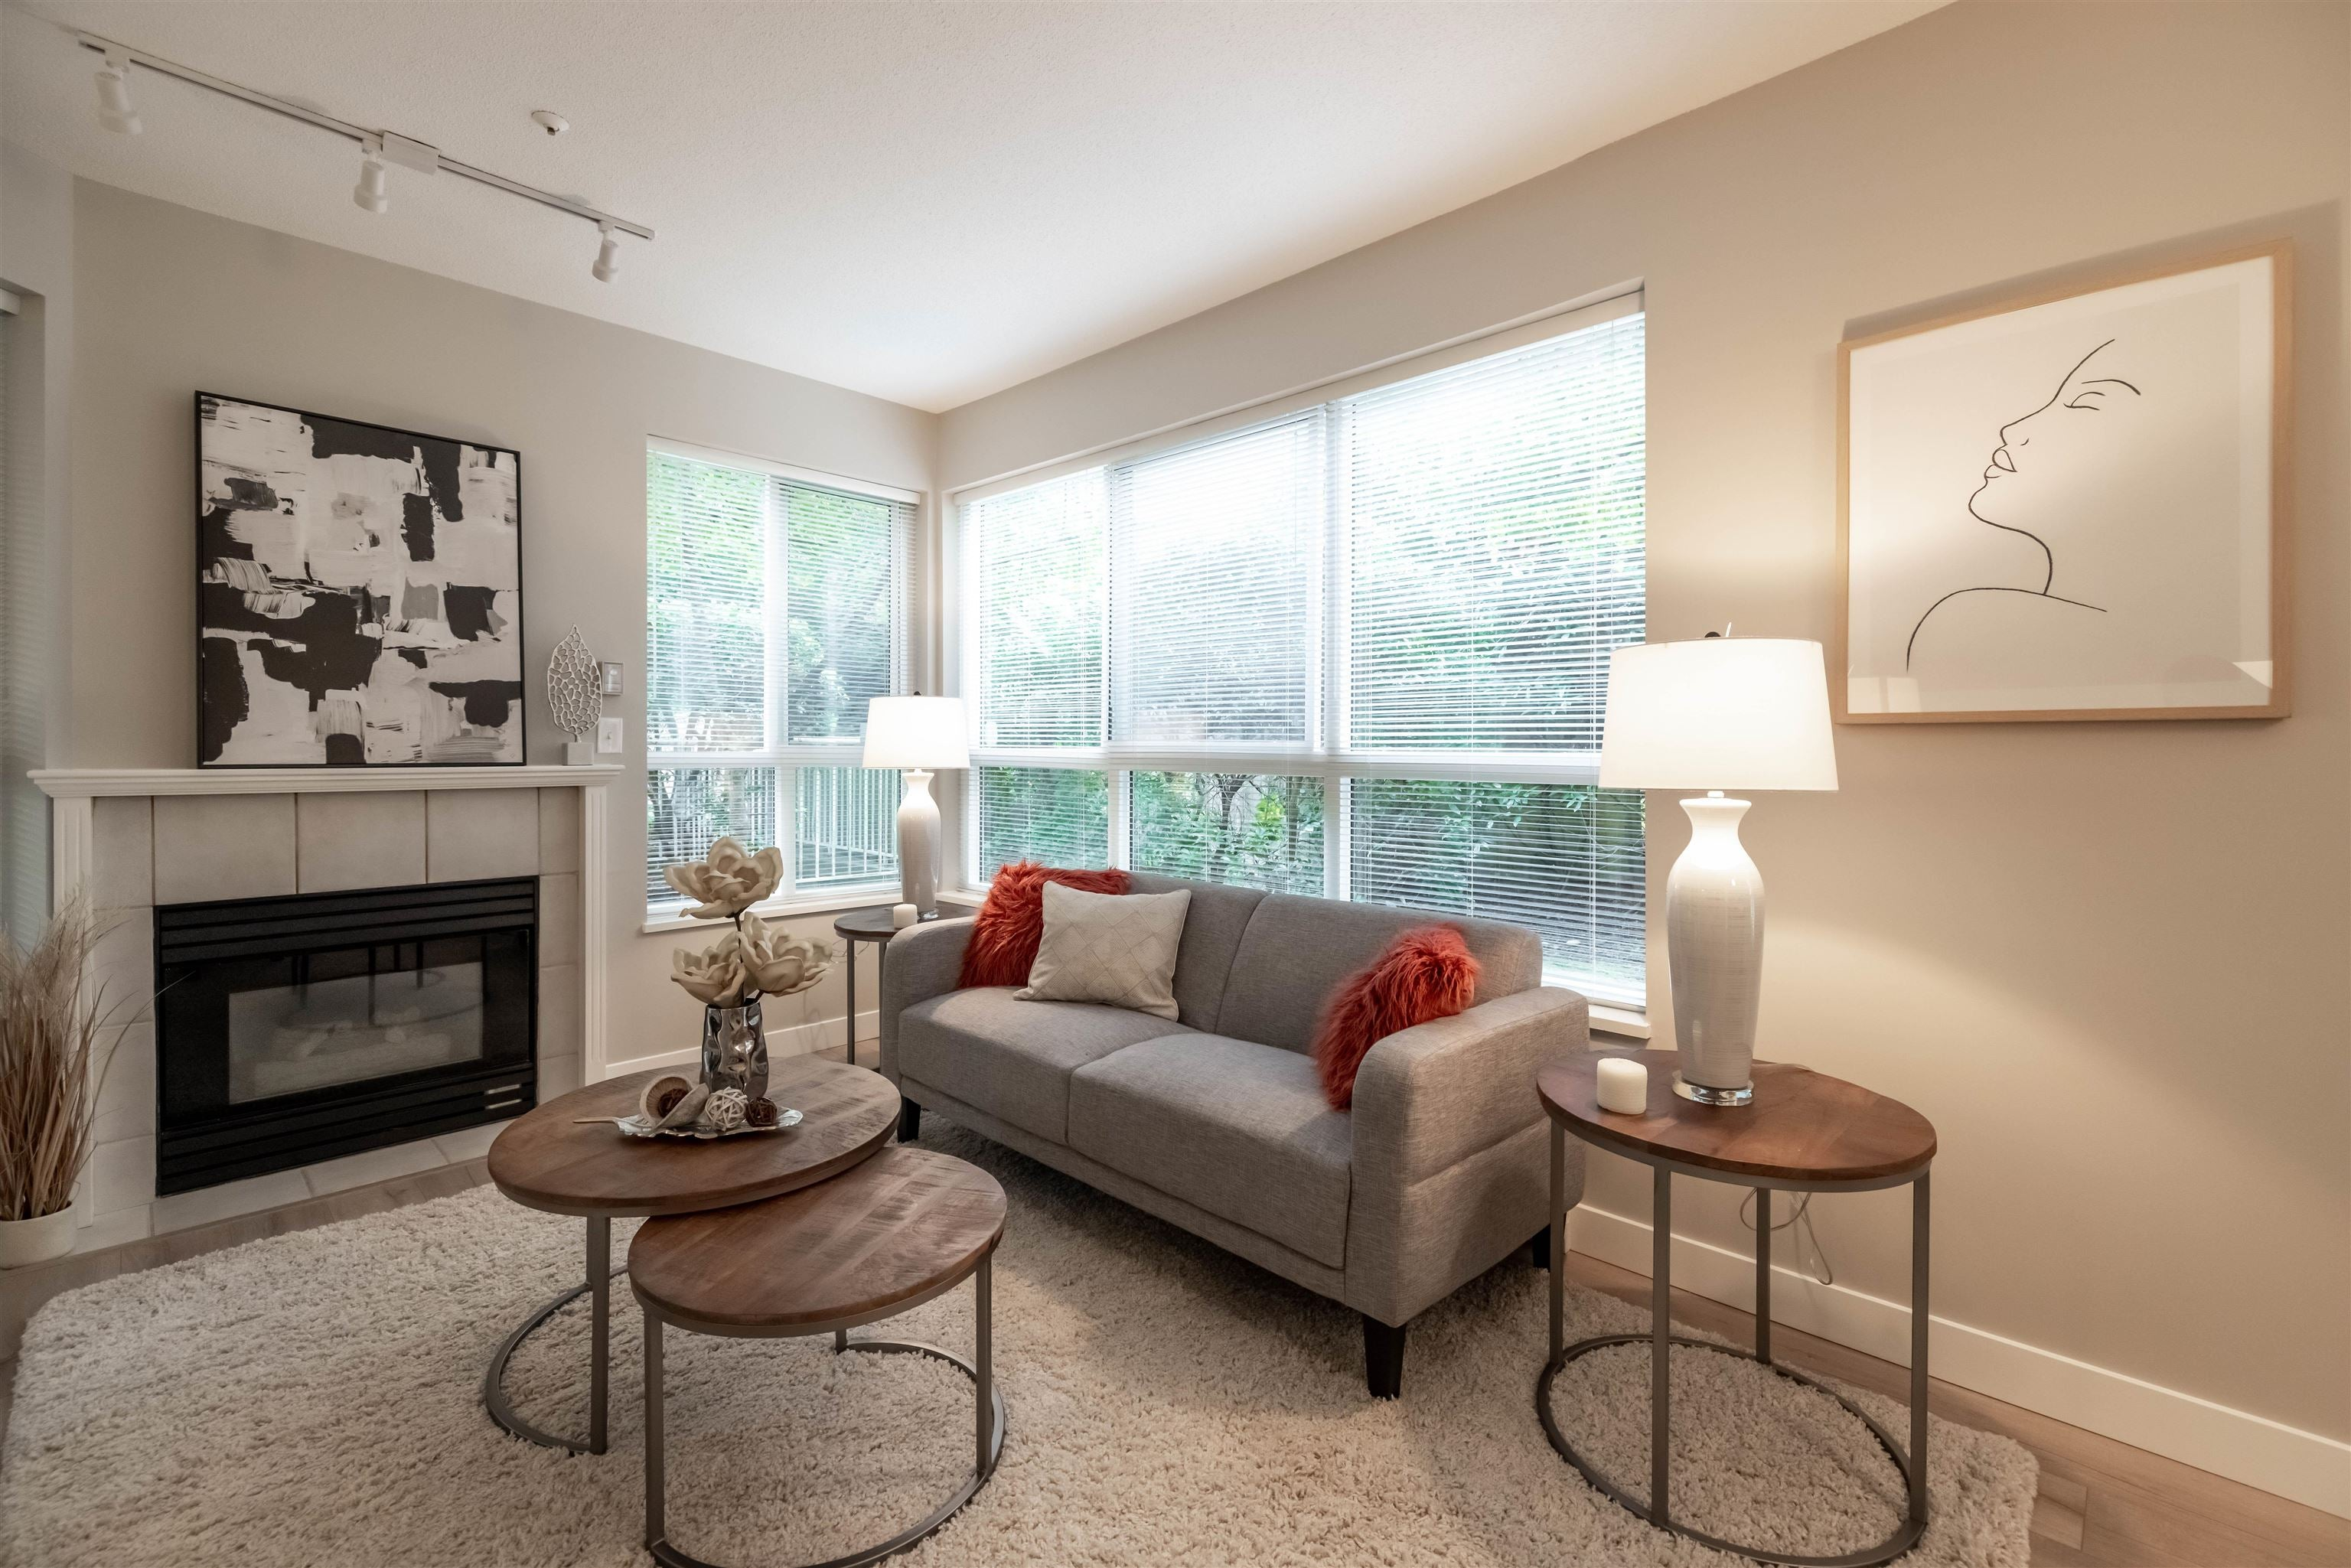 105 8139 121A STREET - Queen Mary Park Surrey Apartment/Condo for sale, 2 Bedrooms (R2623168) - #3